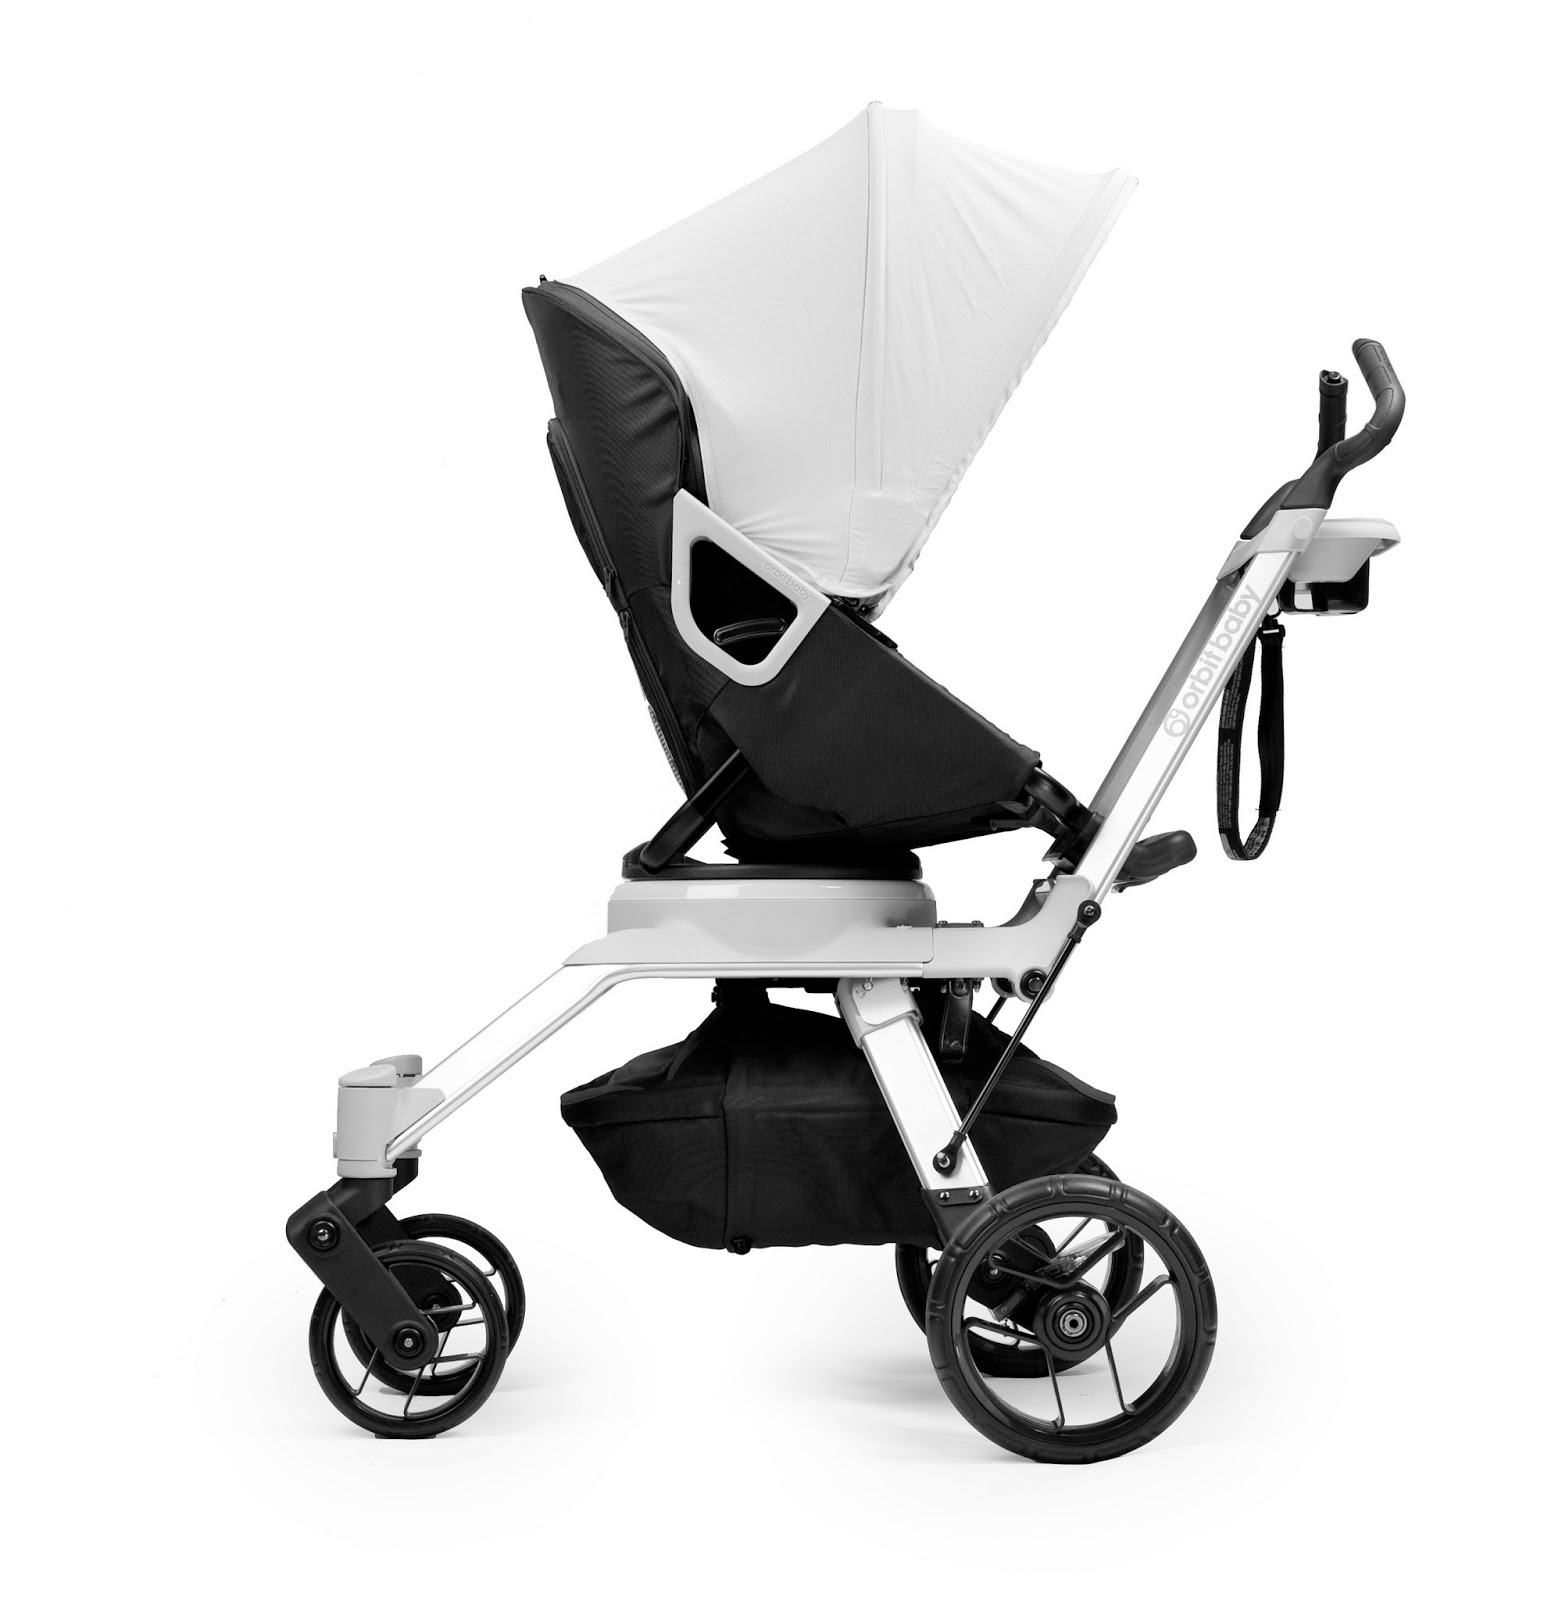 Orbit G2 pushchair review and challenge!